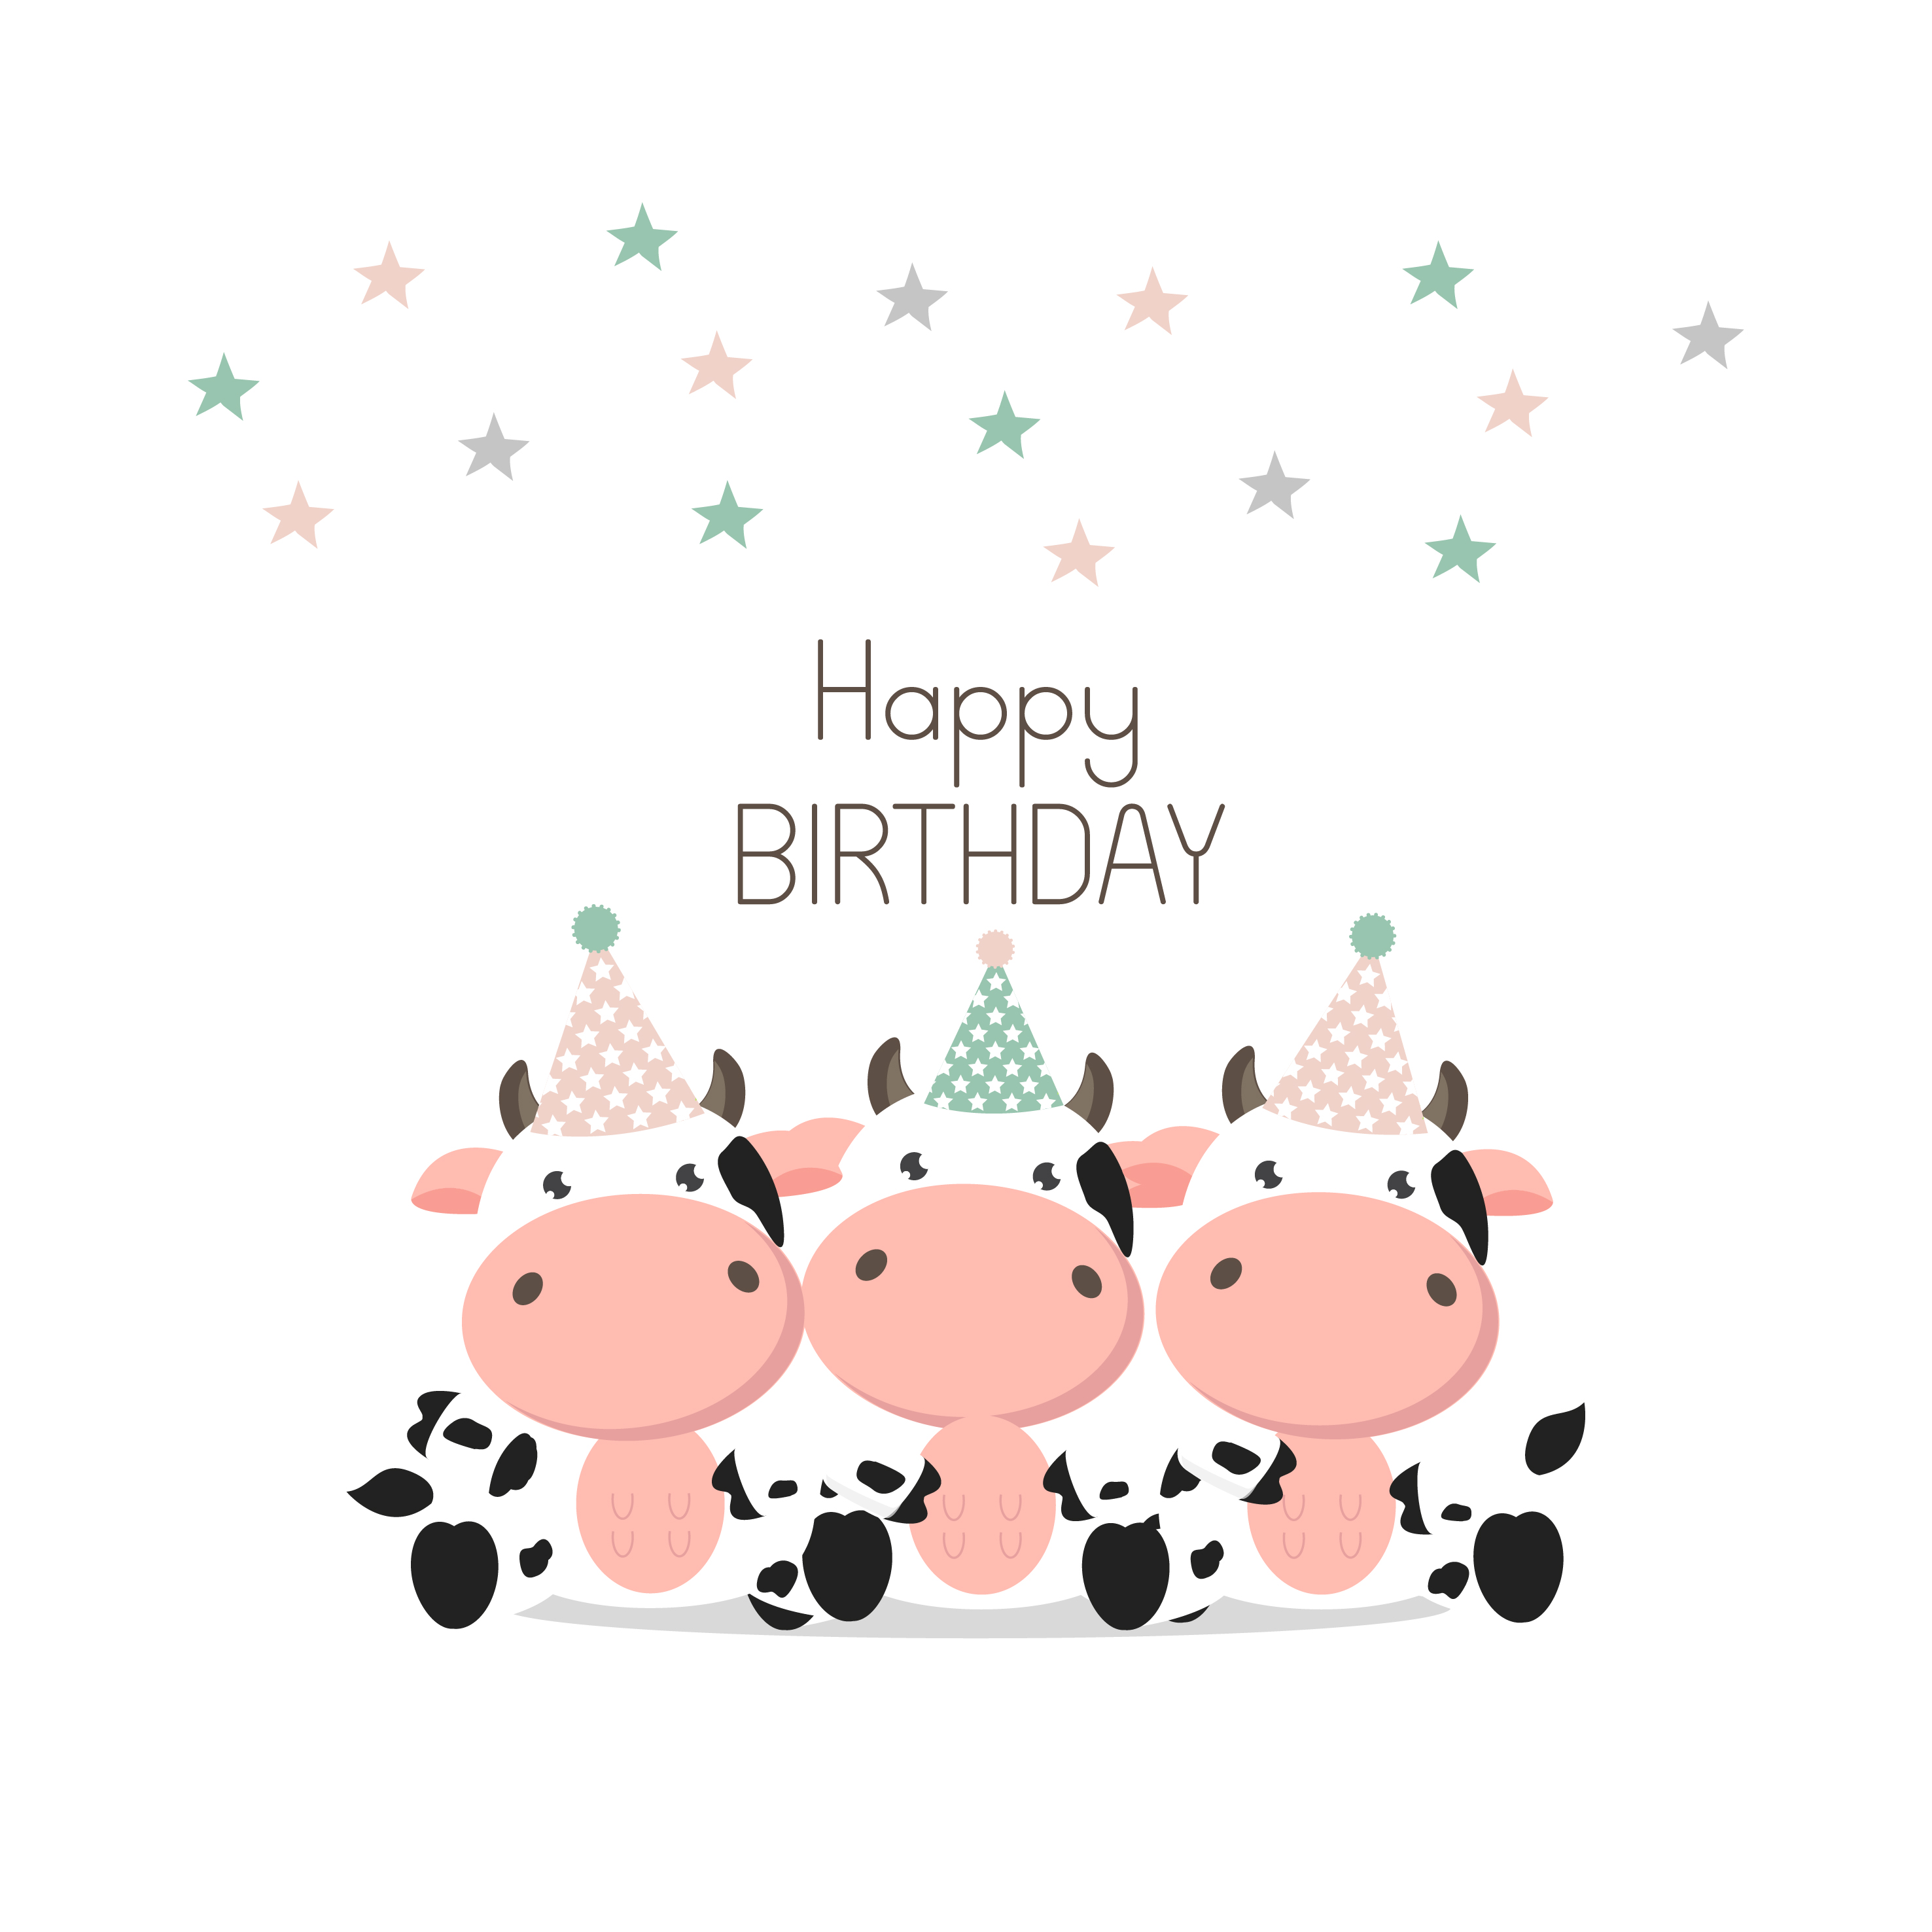 happy birthday greeting card cute cows  download free